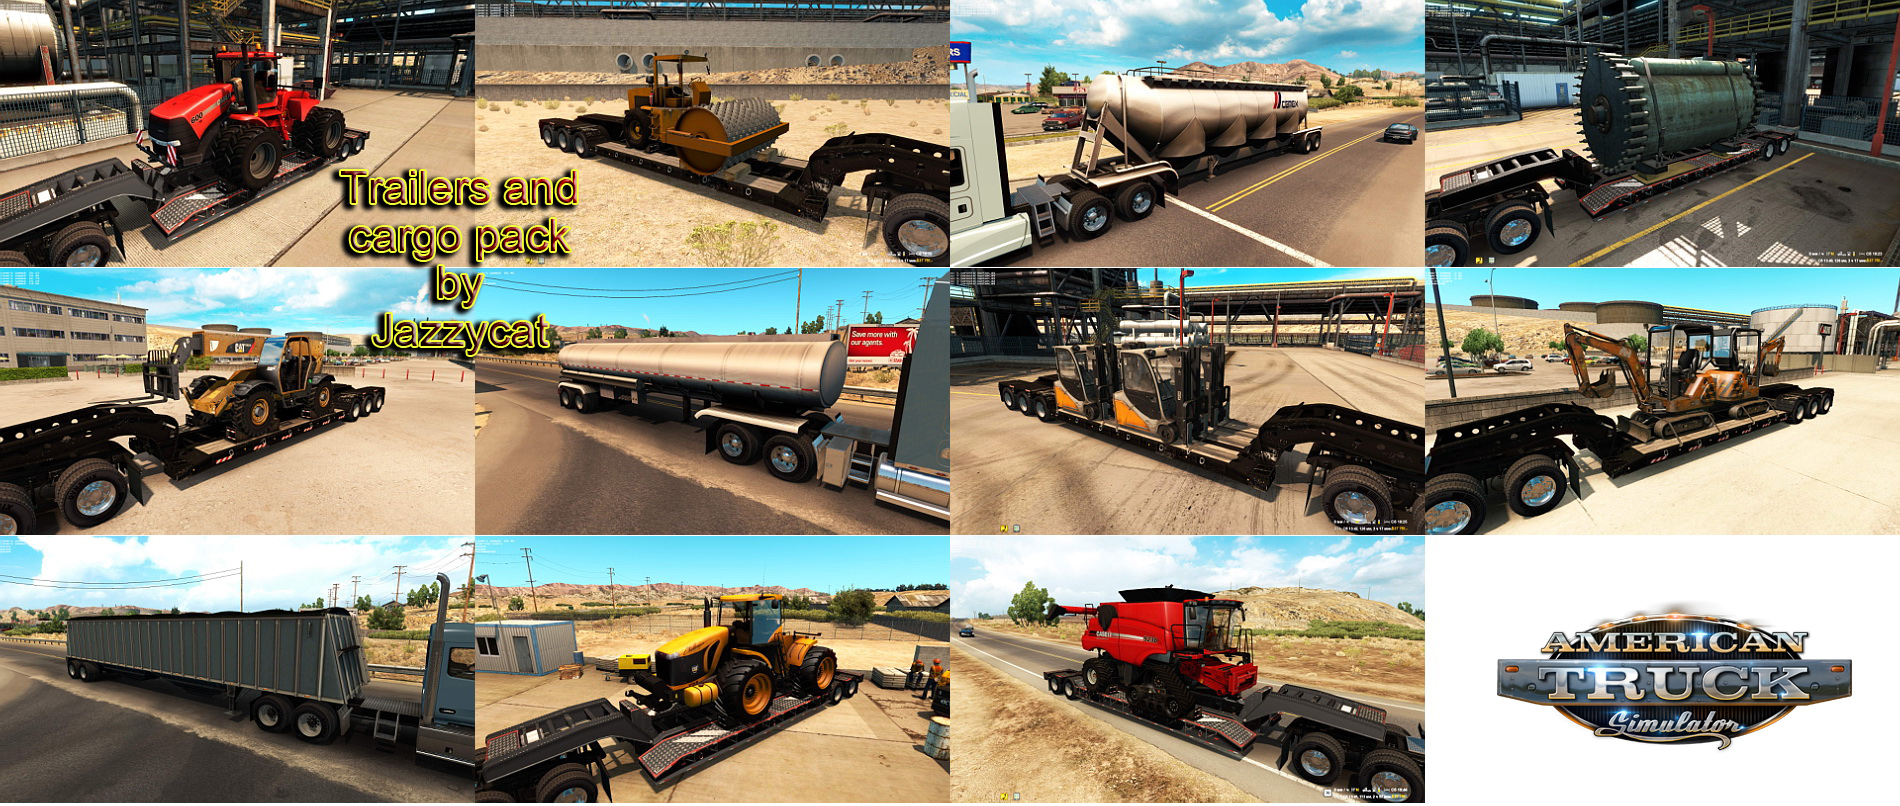 trailers_and_cargo_pack_by_Jazzycat_v1.0.jpg